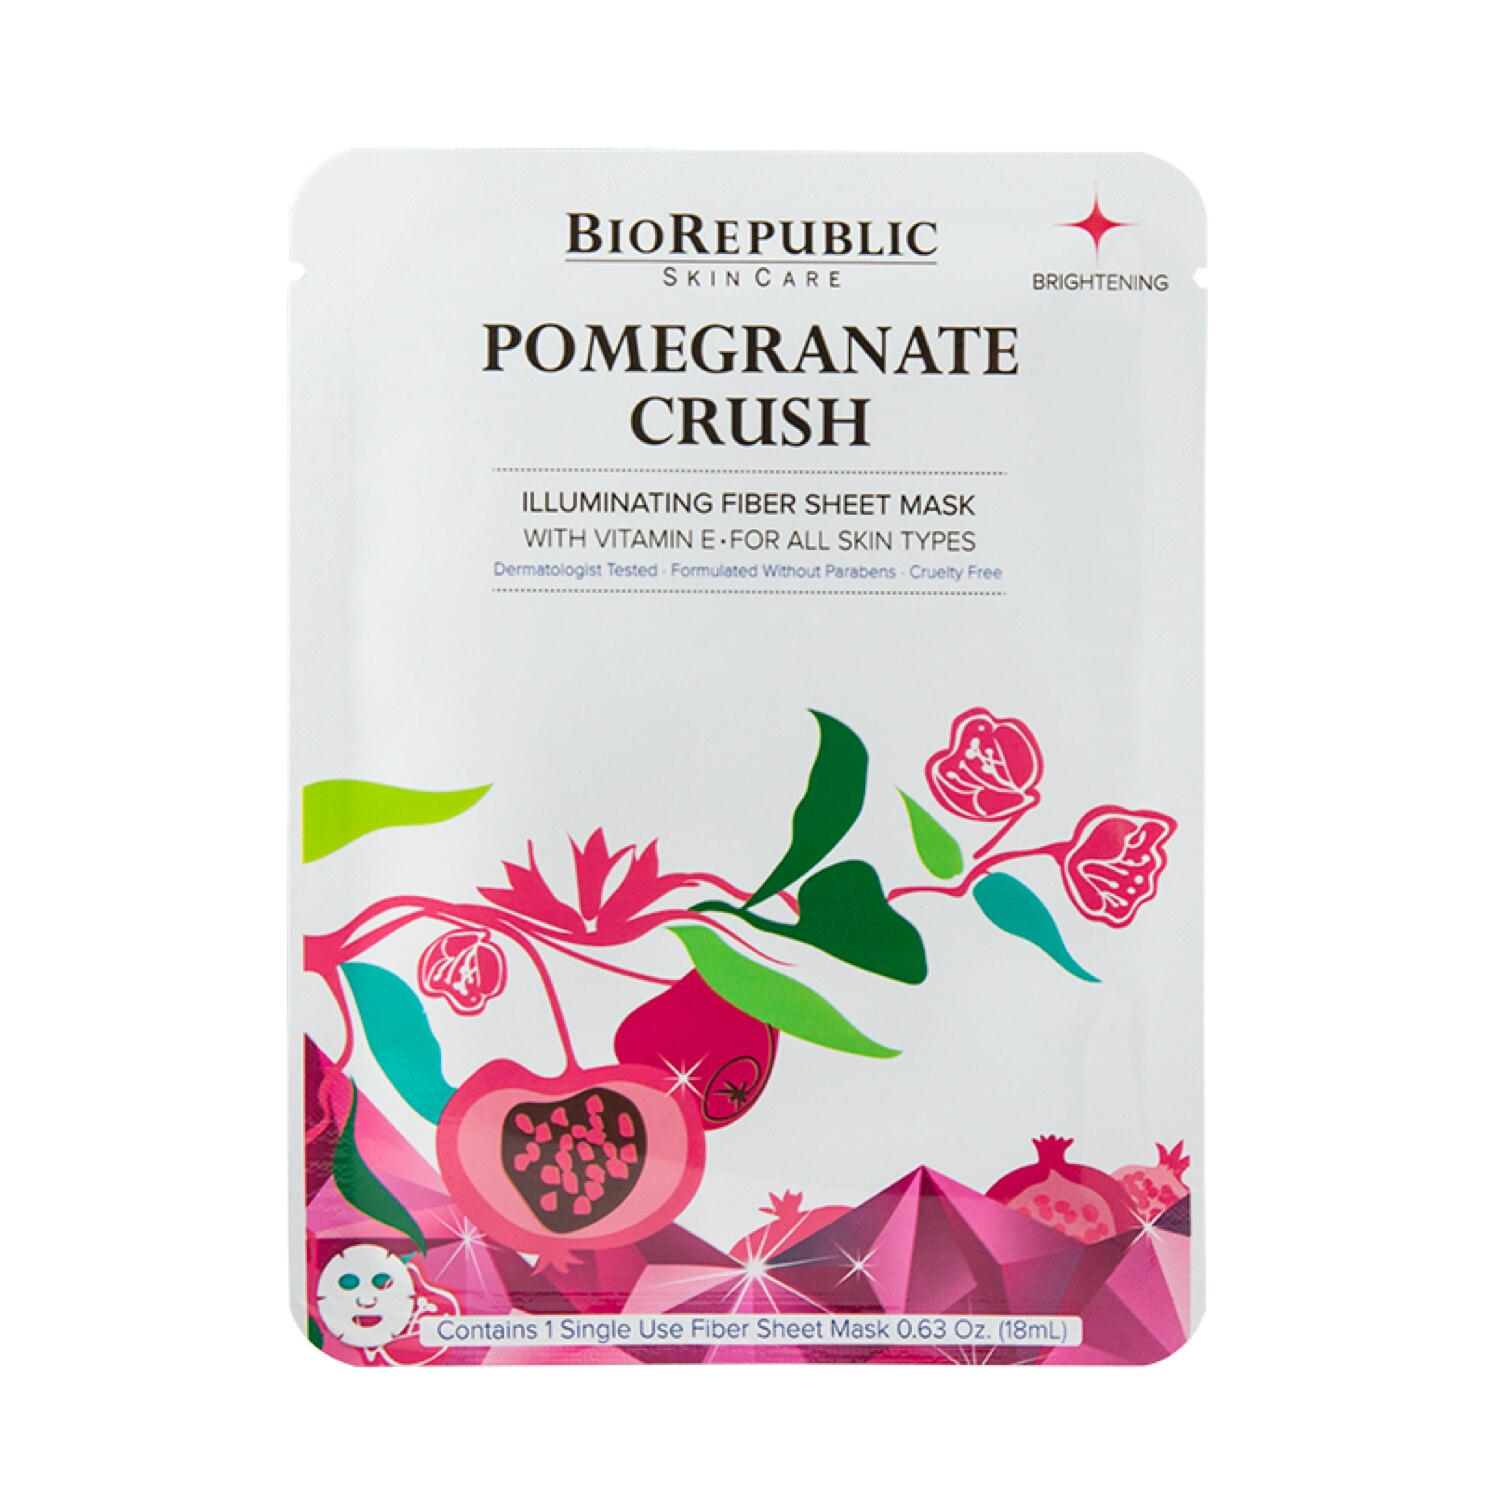 POMEGRANATE CRUSH ILLUMINATING FIBER MASK (MASCARILLA PARA ROSTRO)